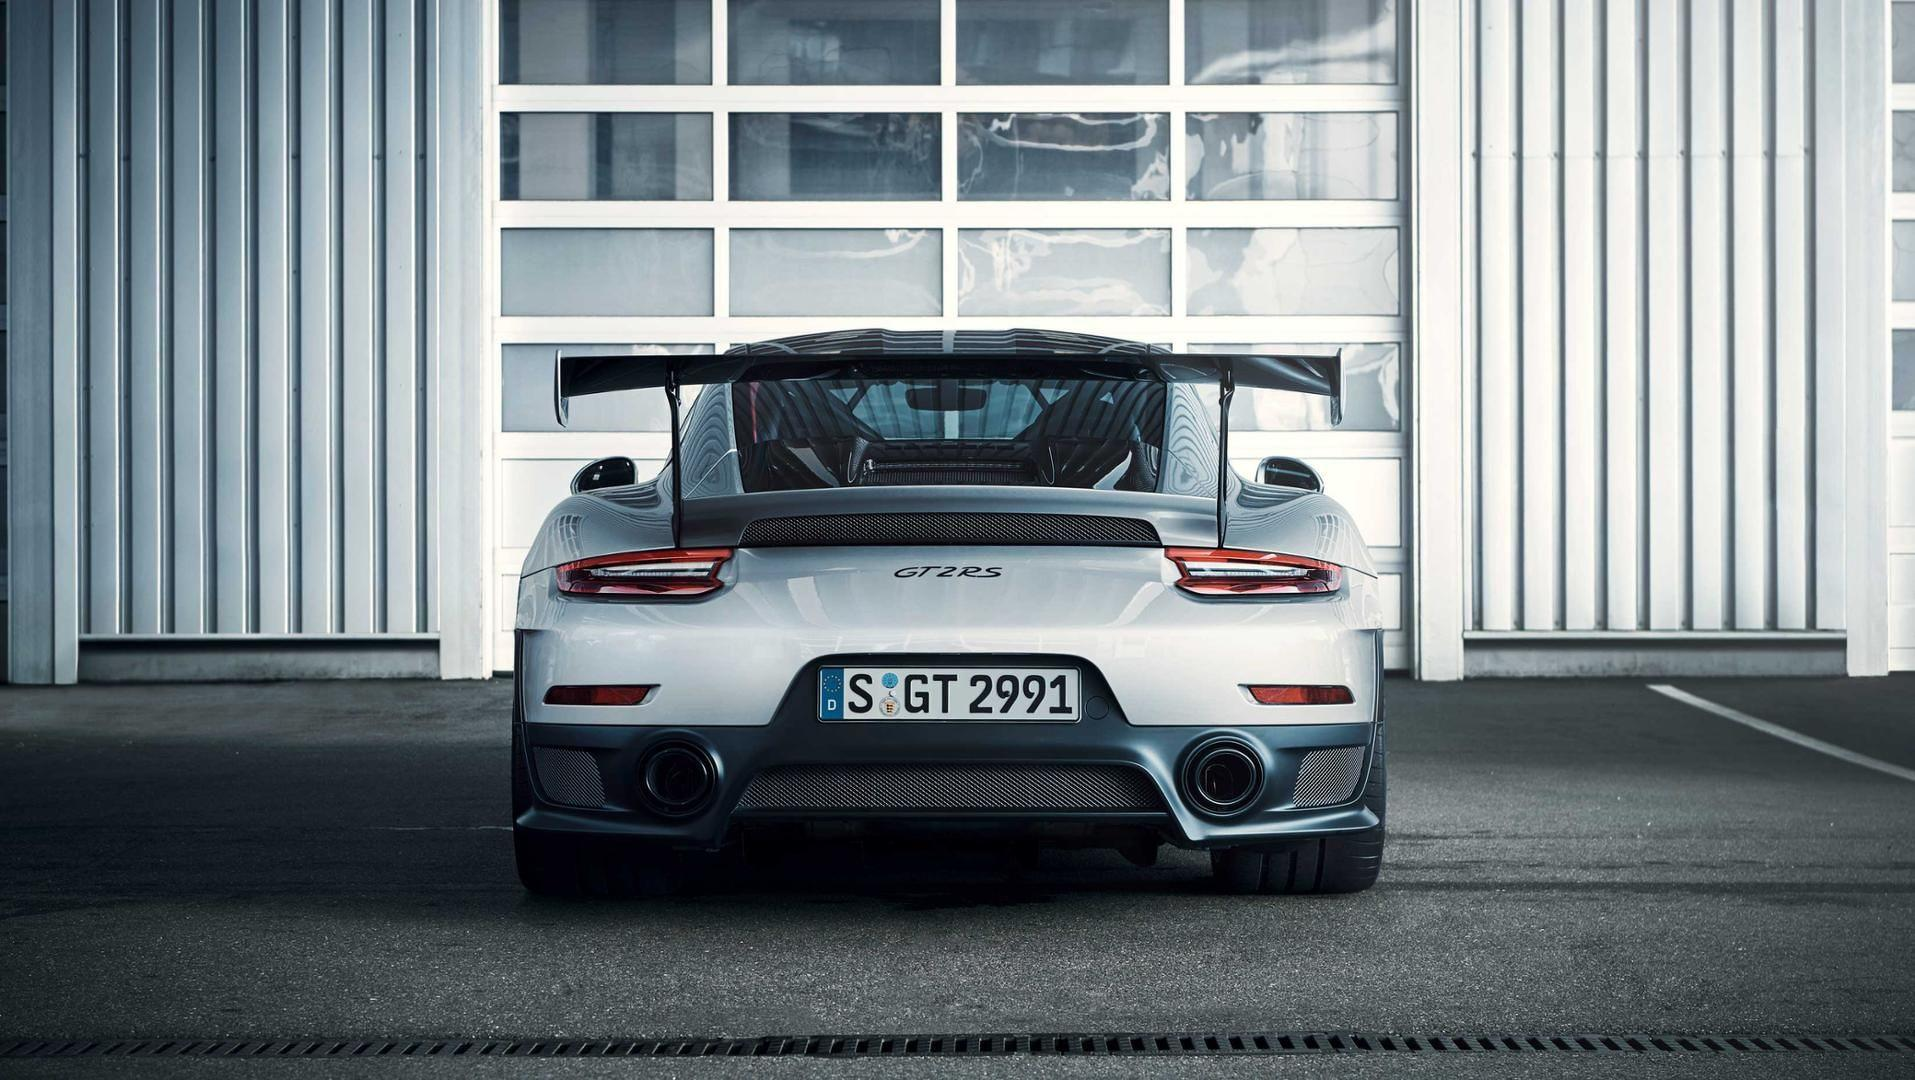 porsche-911-gt2-rs-leaked-official-image (3)